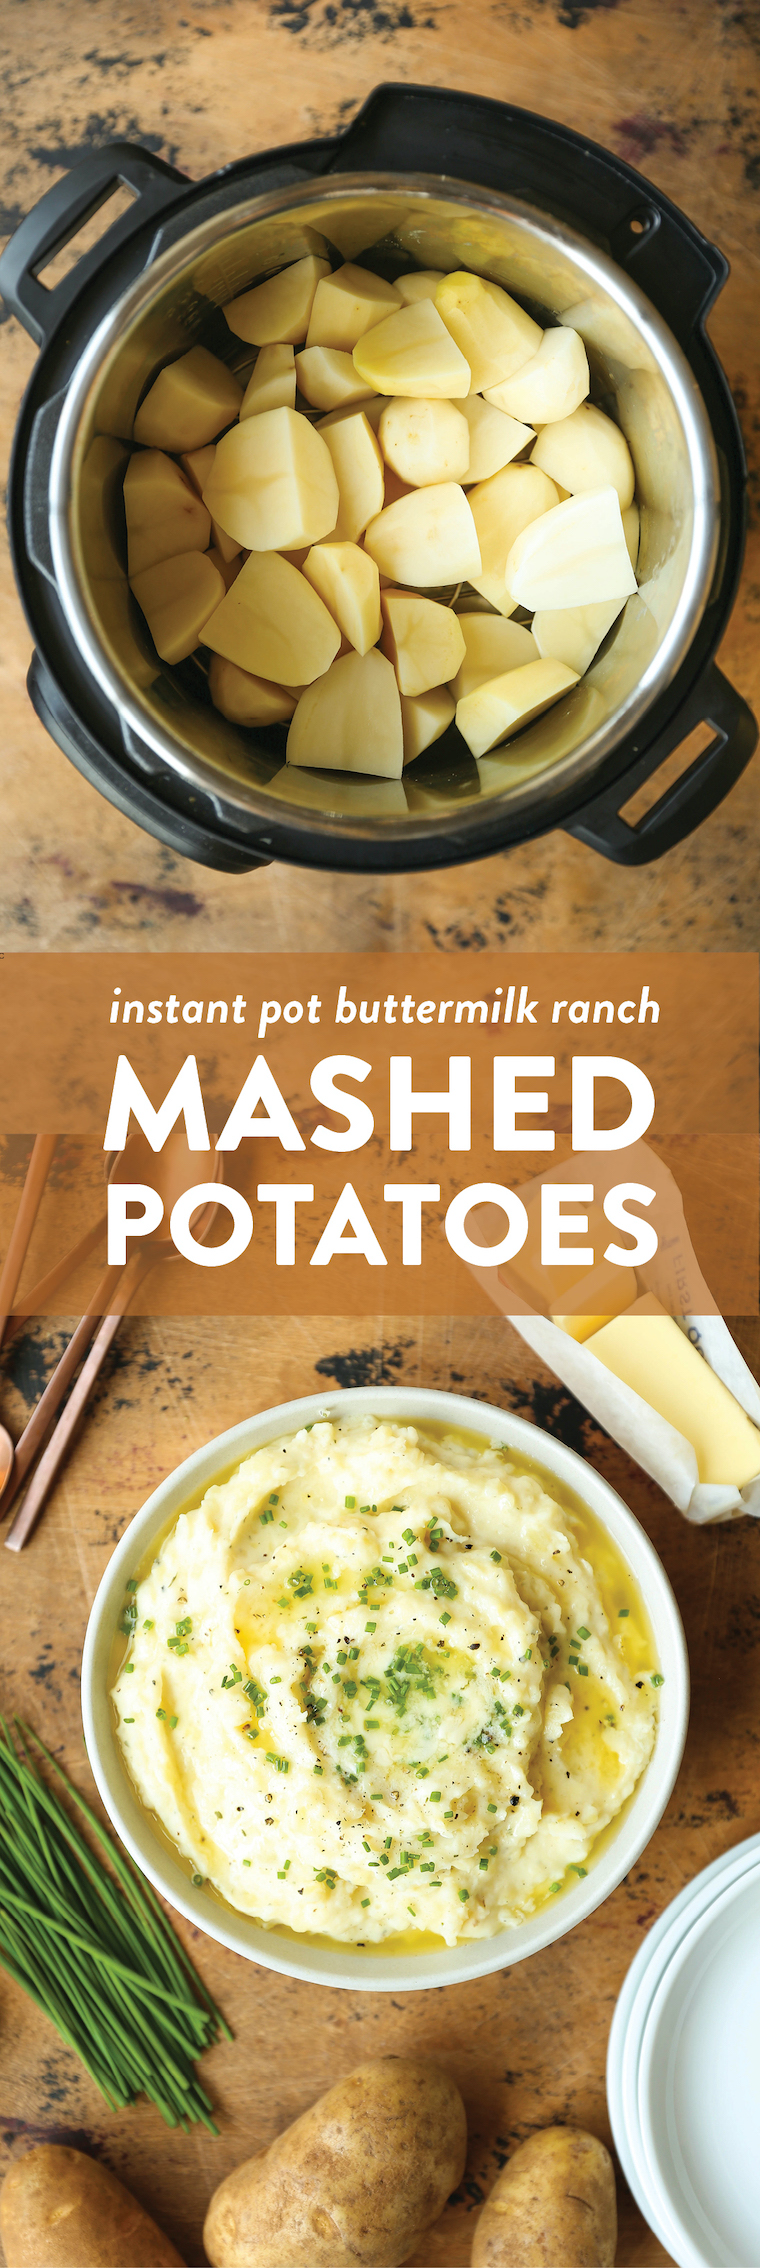 Instant Pot Mashed Potatoes - Oh-so-creamy buttermilk Ranch mashed potatoes! It does not get any easier or quicker than this. One pot, 10 min. MIND BLOWN.